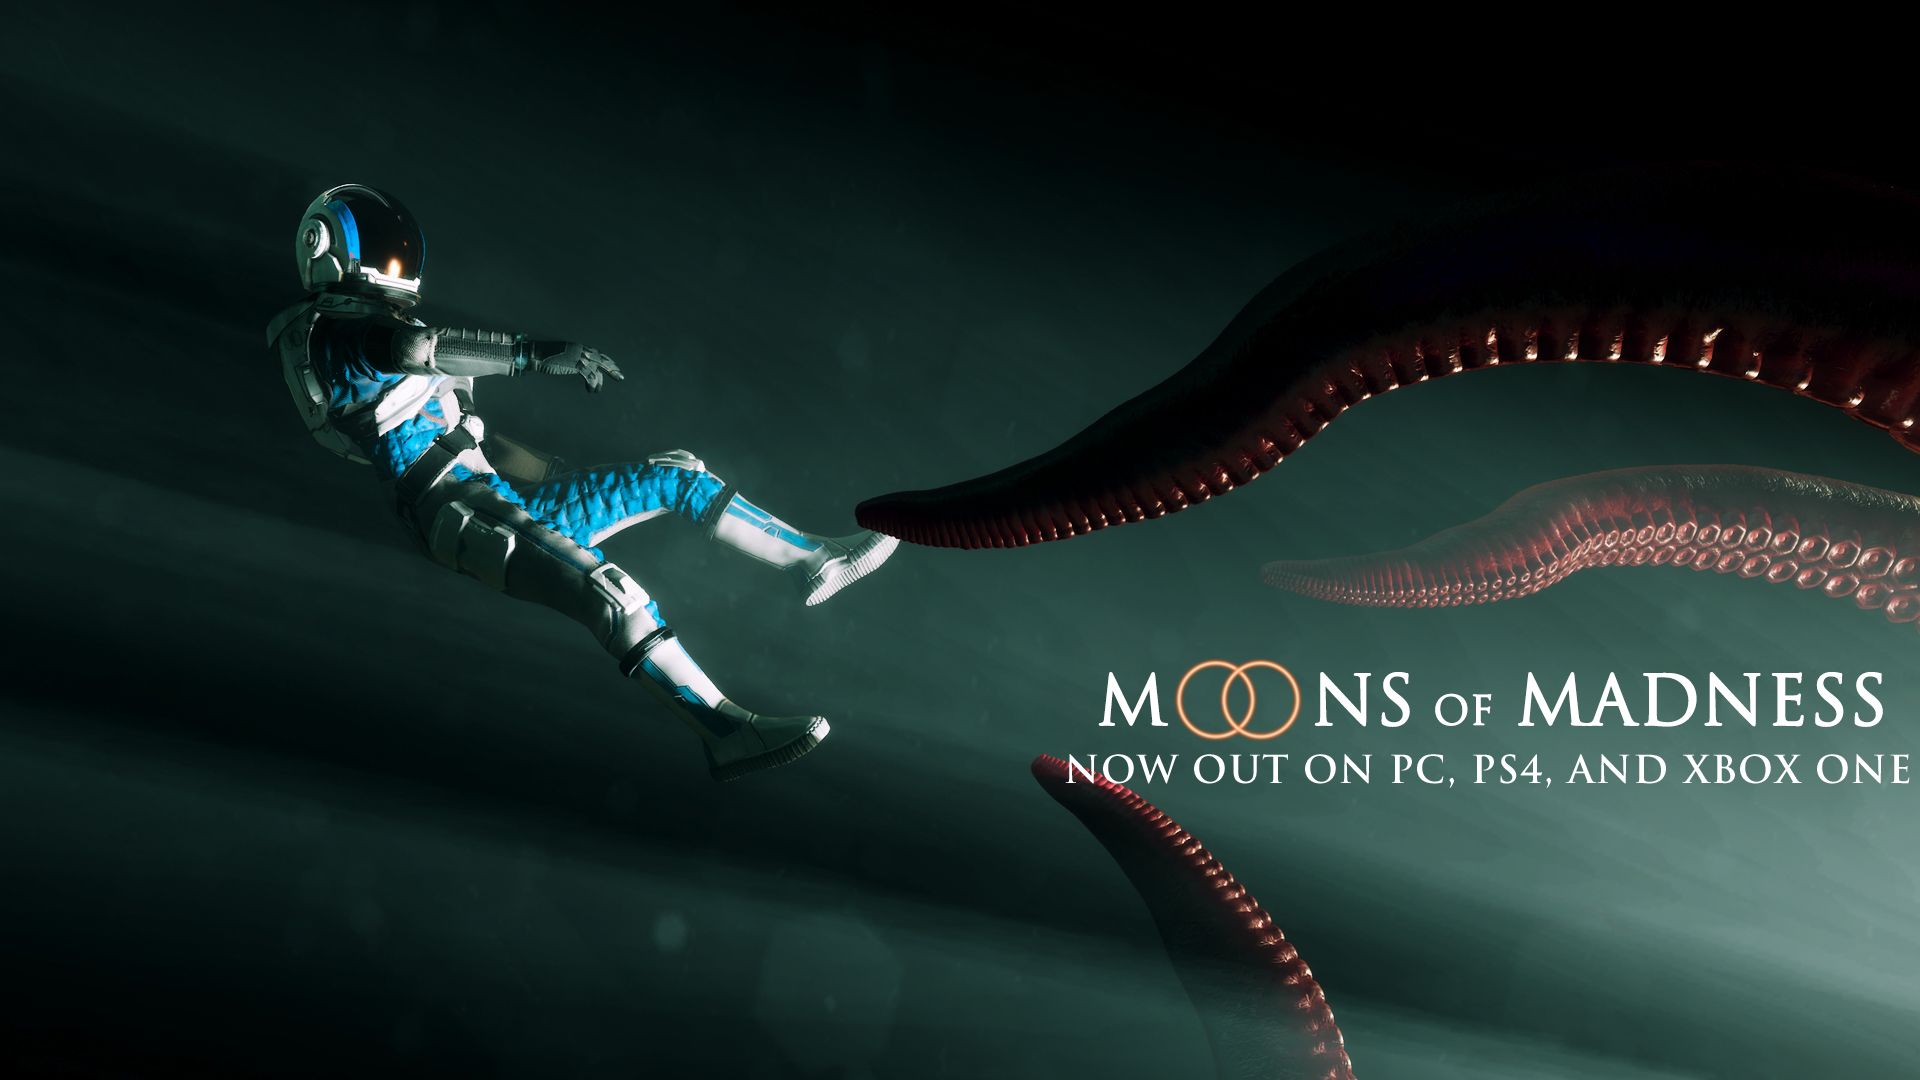 Moons of Madness now on PC, PS4, and Xbox!